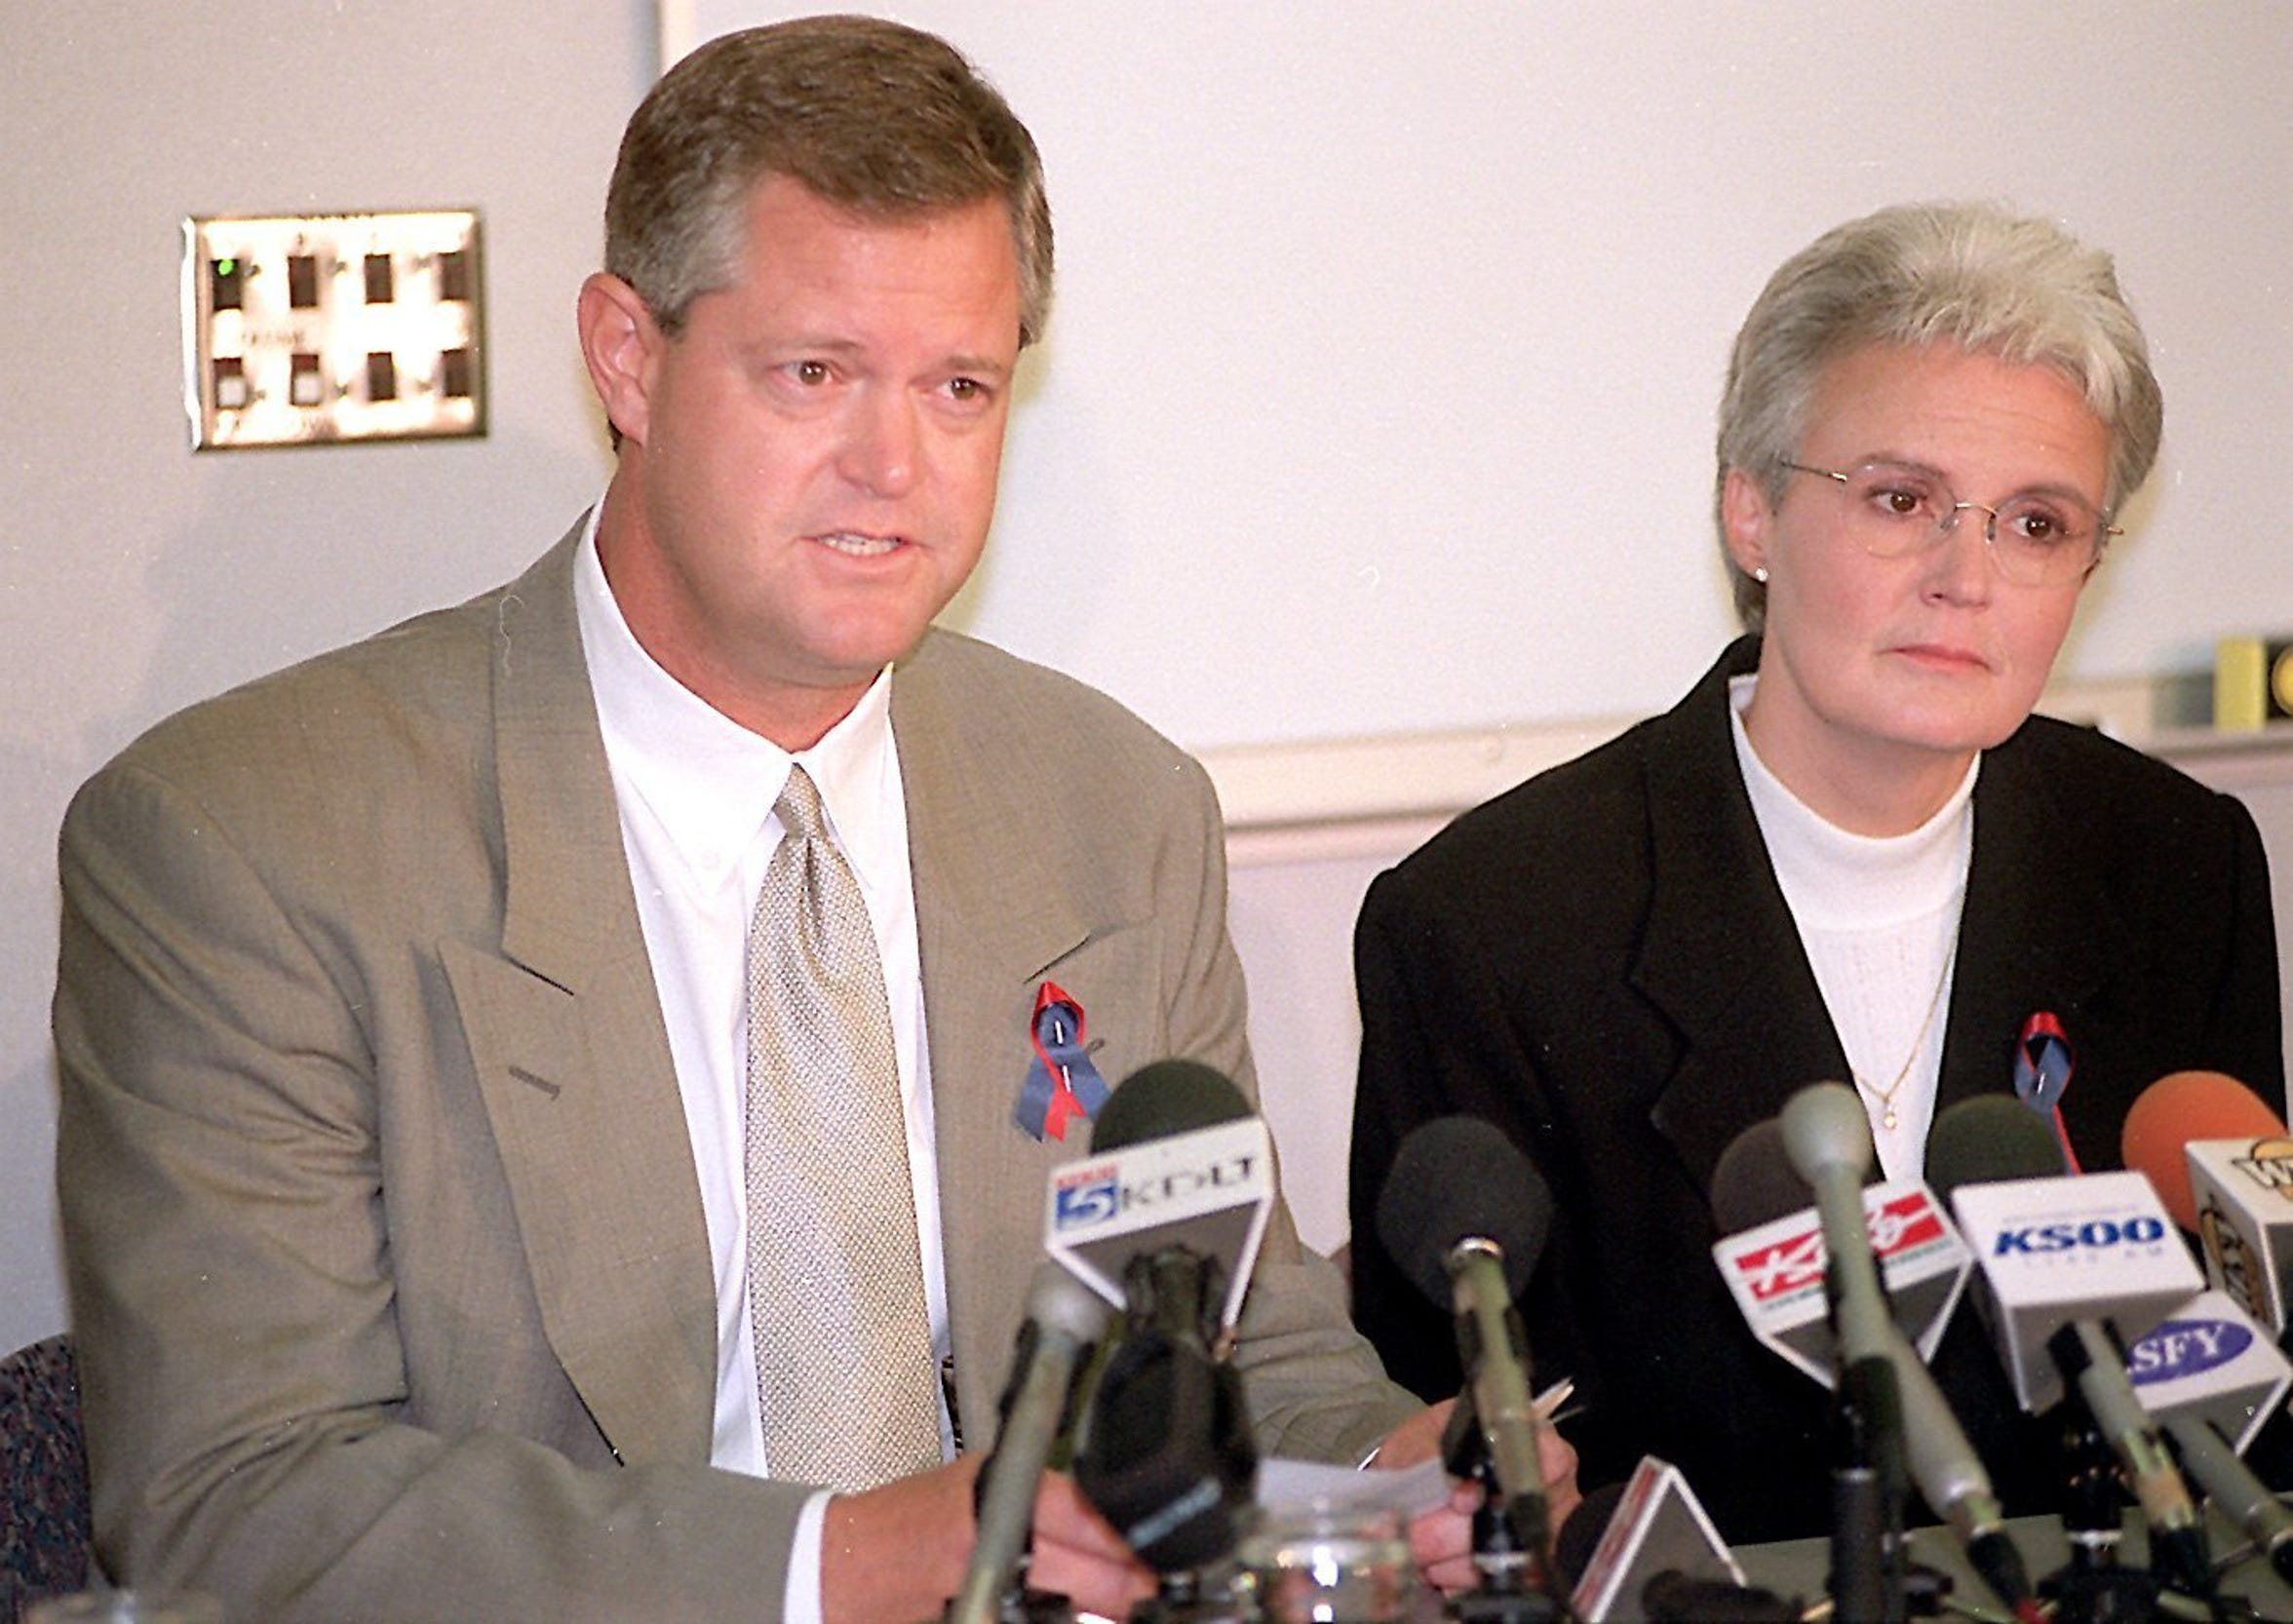 Kelby Krabbenhoft addresses the media along with Sioux Valley executive Becky Nelson following a helicopter crash in 1998 that killed a three-person crew from the hospital.